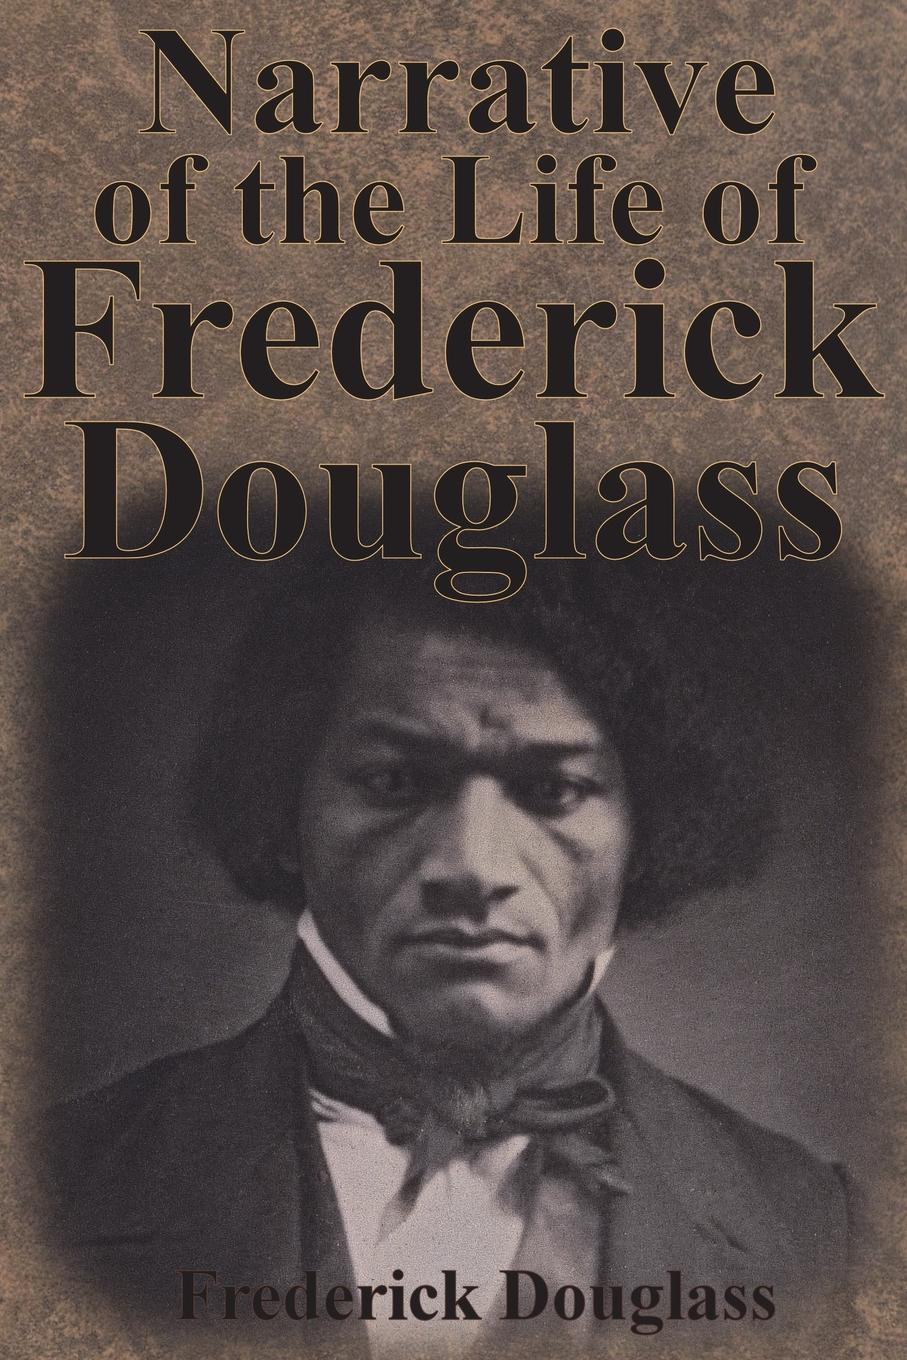 Frederick Douglass Narrative of the Life of Frederick Douglass scott w life of napoleon volume 1